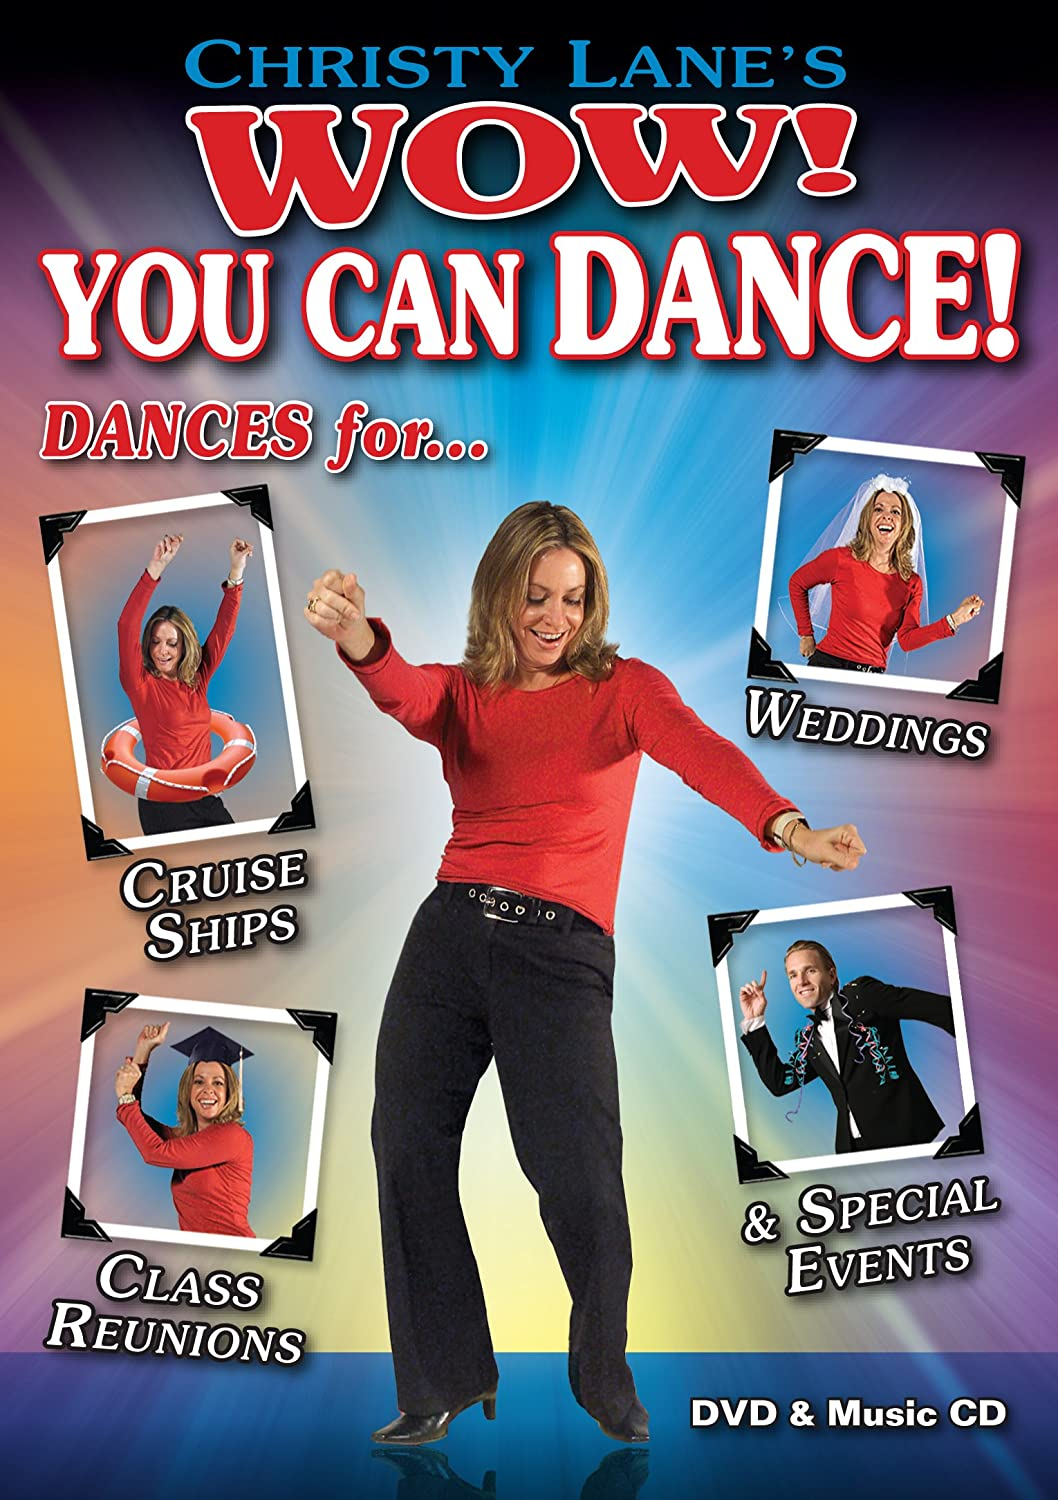 You Can Dance Dances For Cruise Ships Weddings Class Reunions And Special Events DVD CD Combo Christy Lane Rich Oliphant Movies TV